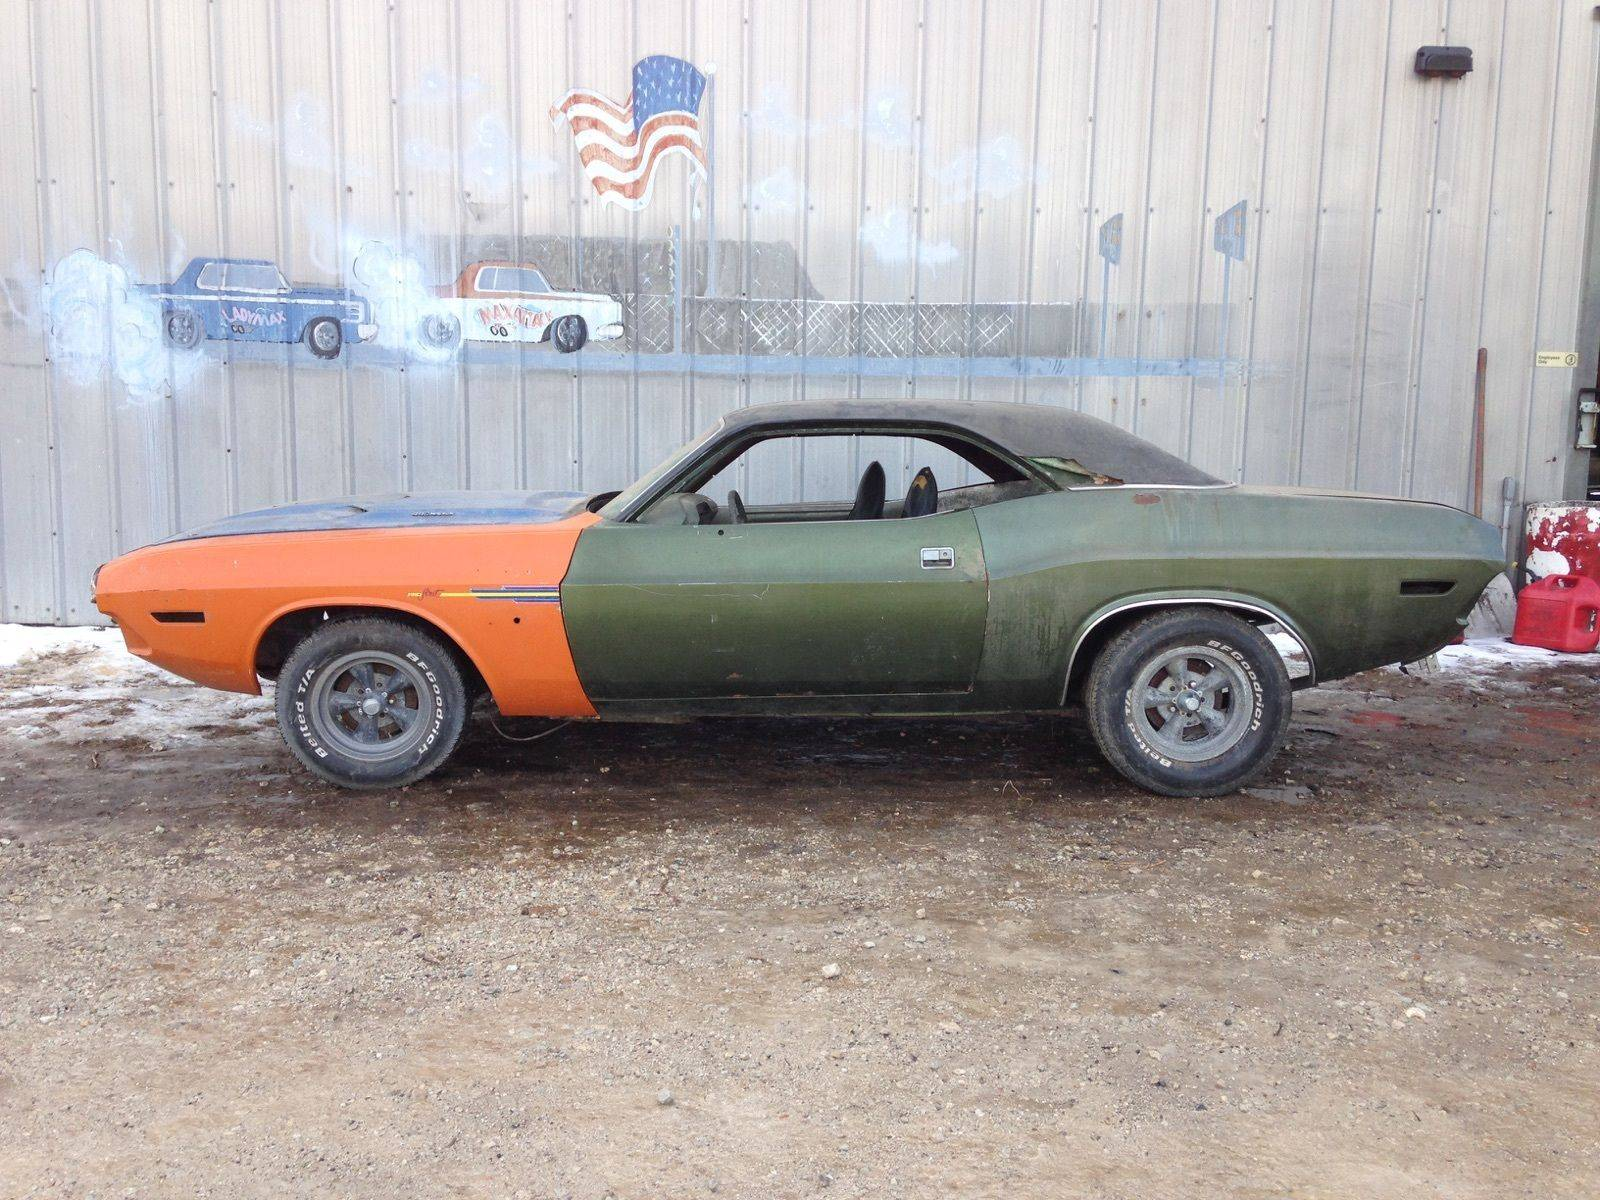 1970 Dodge Challenger Project Car For Sale >> 70 Challenger RT Project for sale on ebay | For E Bodies Only Mopar Forum